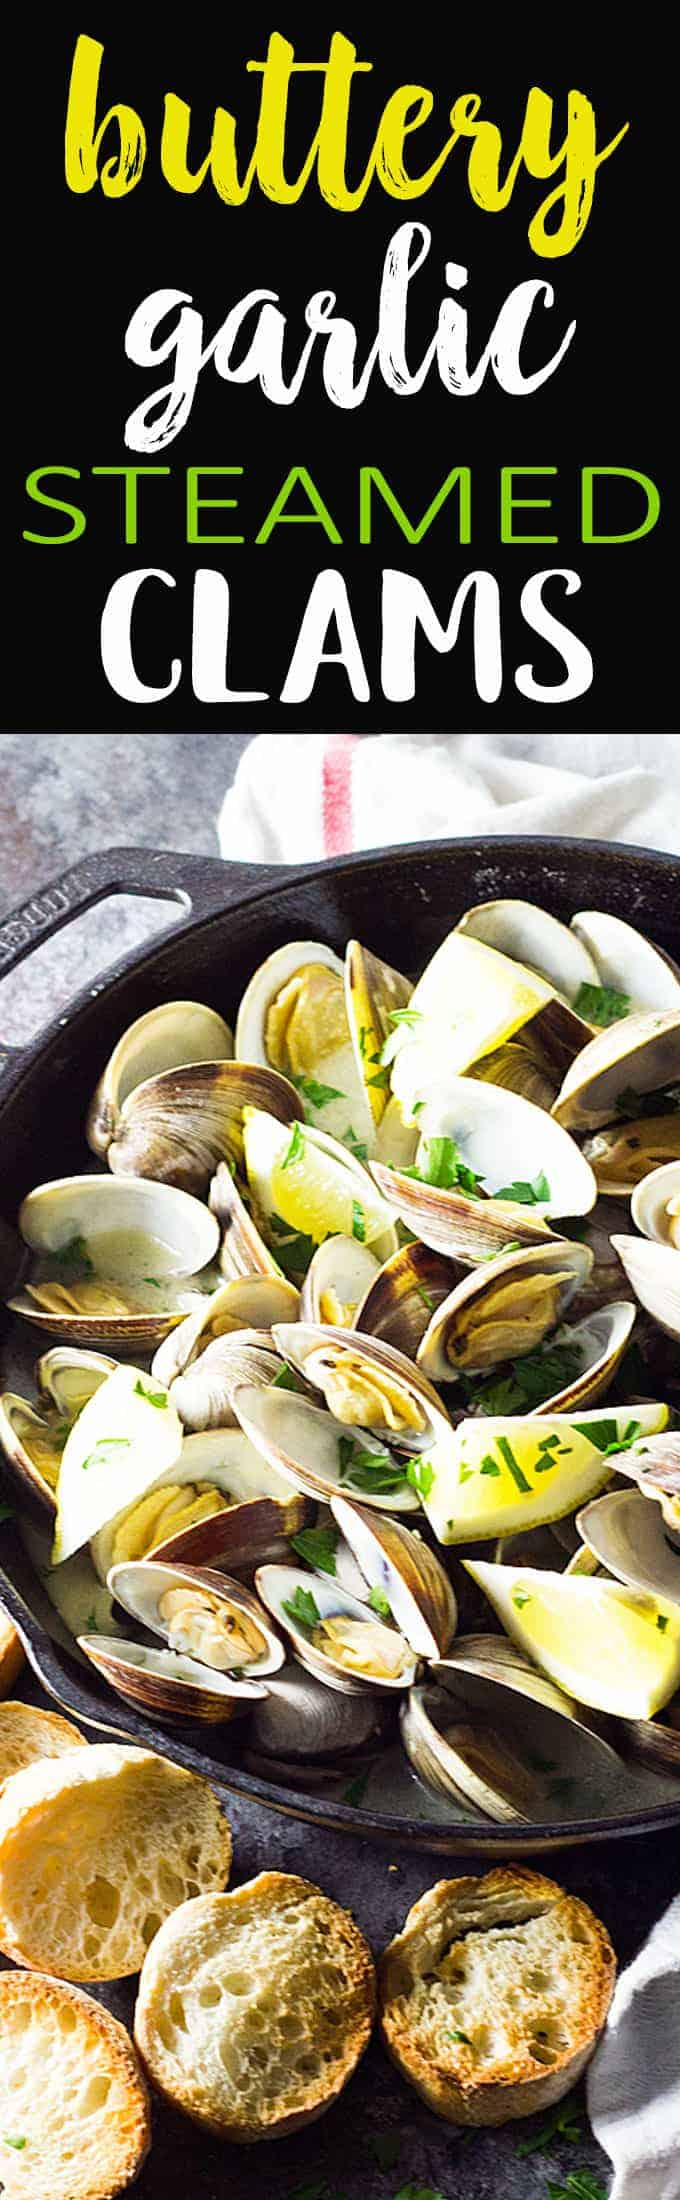 Just 15 minutes is all it takes for these steamed clams in a velvety, buttery garlic white wine sauce!